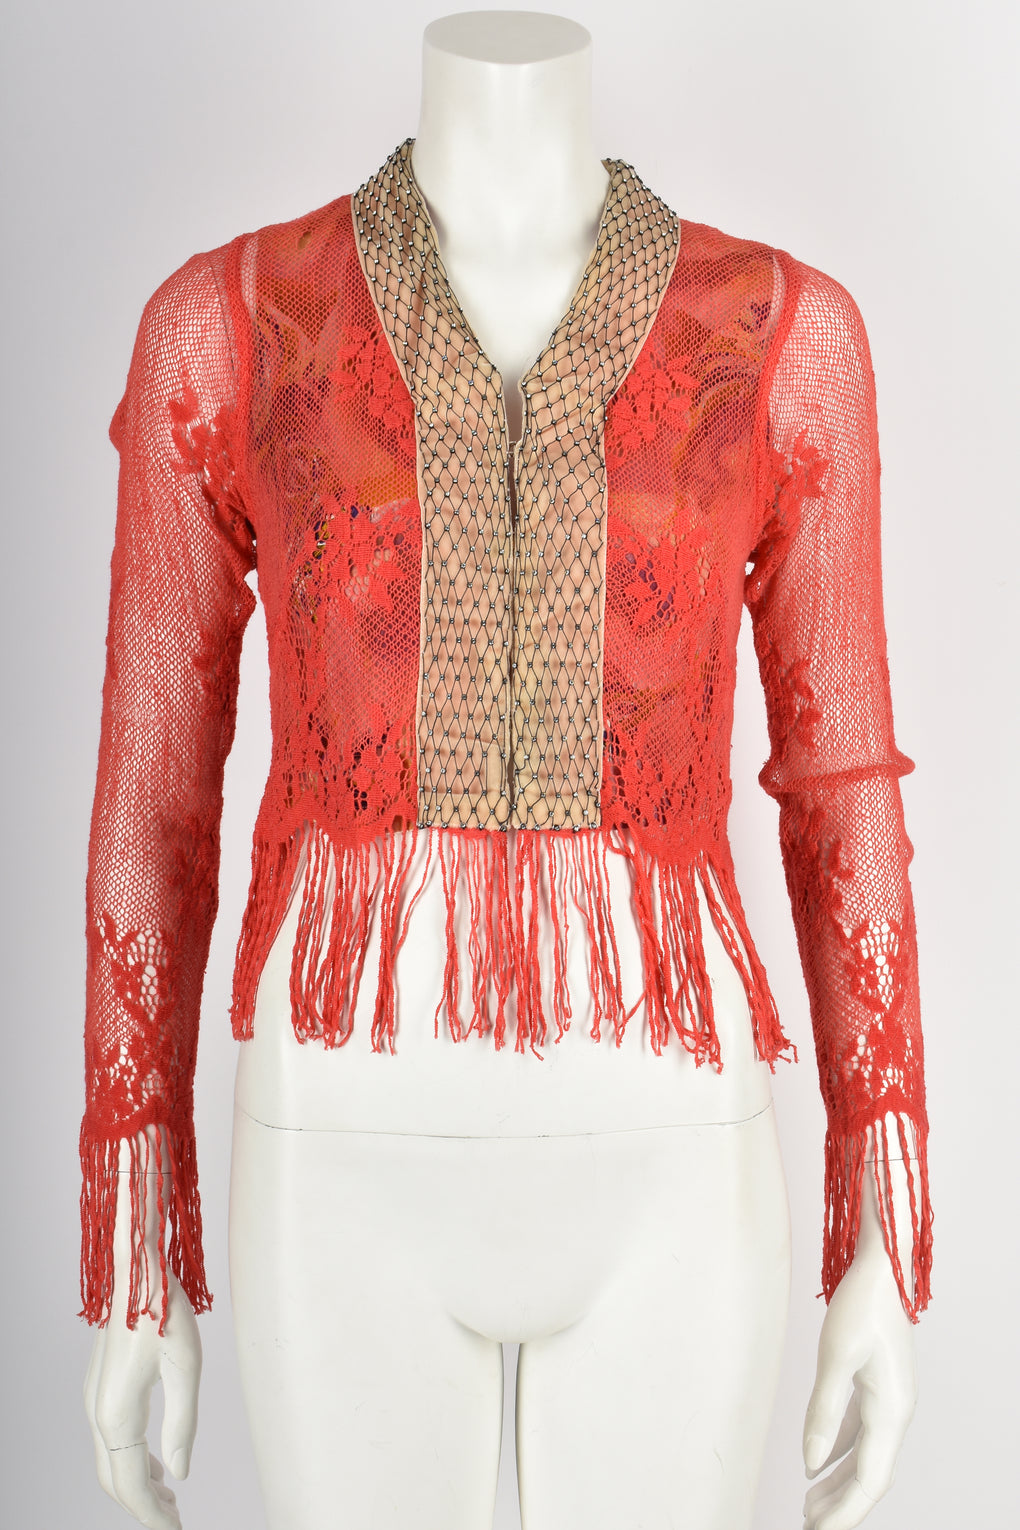 VOYAGE 90s coral red lace fringe cardigan S